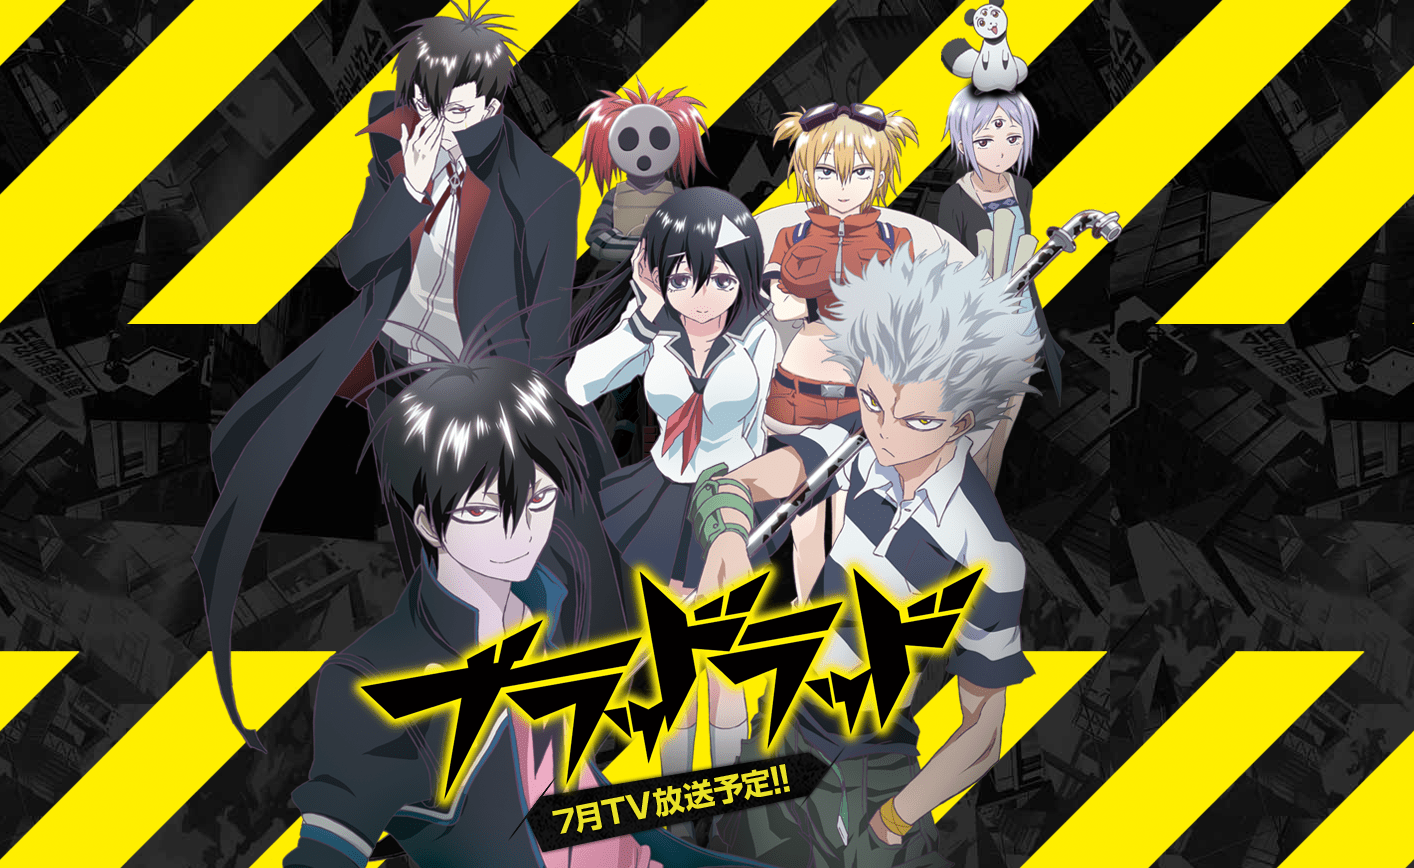 https://i1.wp.com/www.animepowerlevel.com/wp-content/uploads/2013/05/BloodLad_poster.png